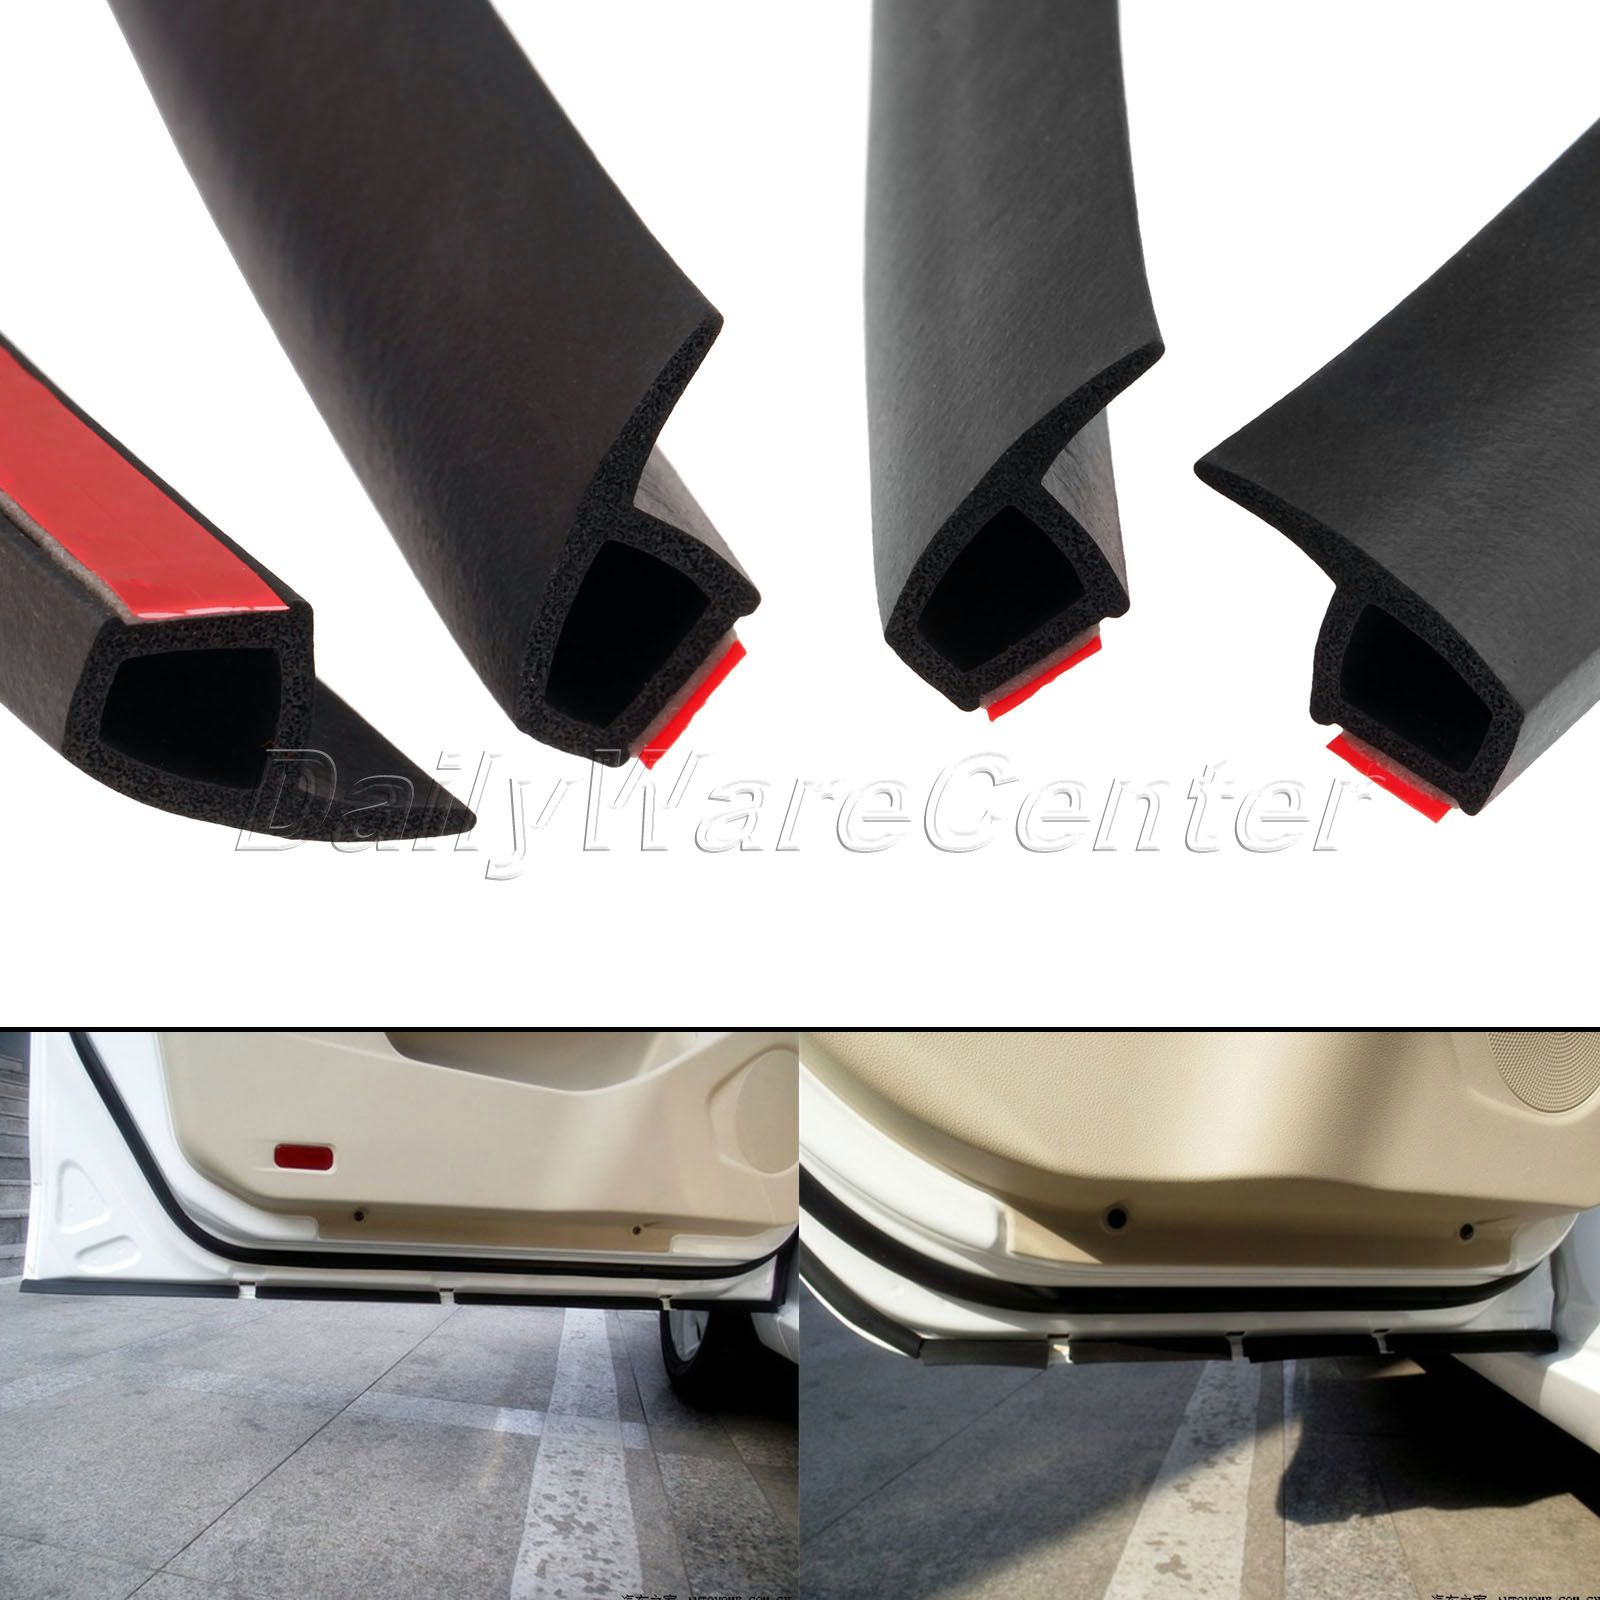 4 Meter P Type Car Door Rubber Seal Strips Soundproof Noise Insulation Sealing Strip Weatherstrip Edge Trim Waterproof Adhesive